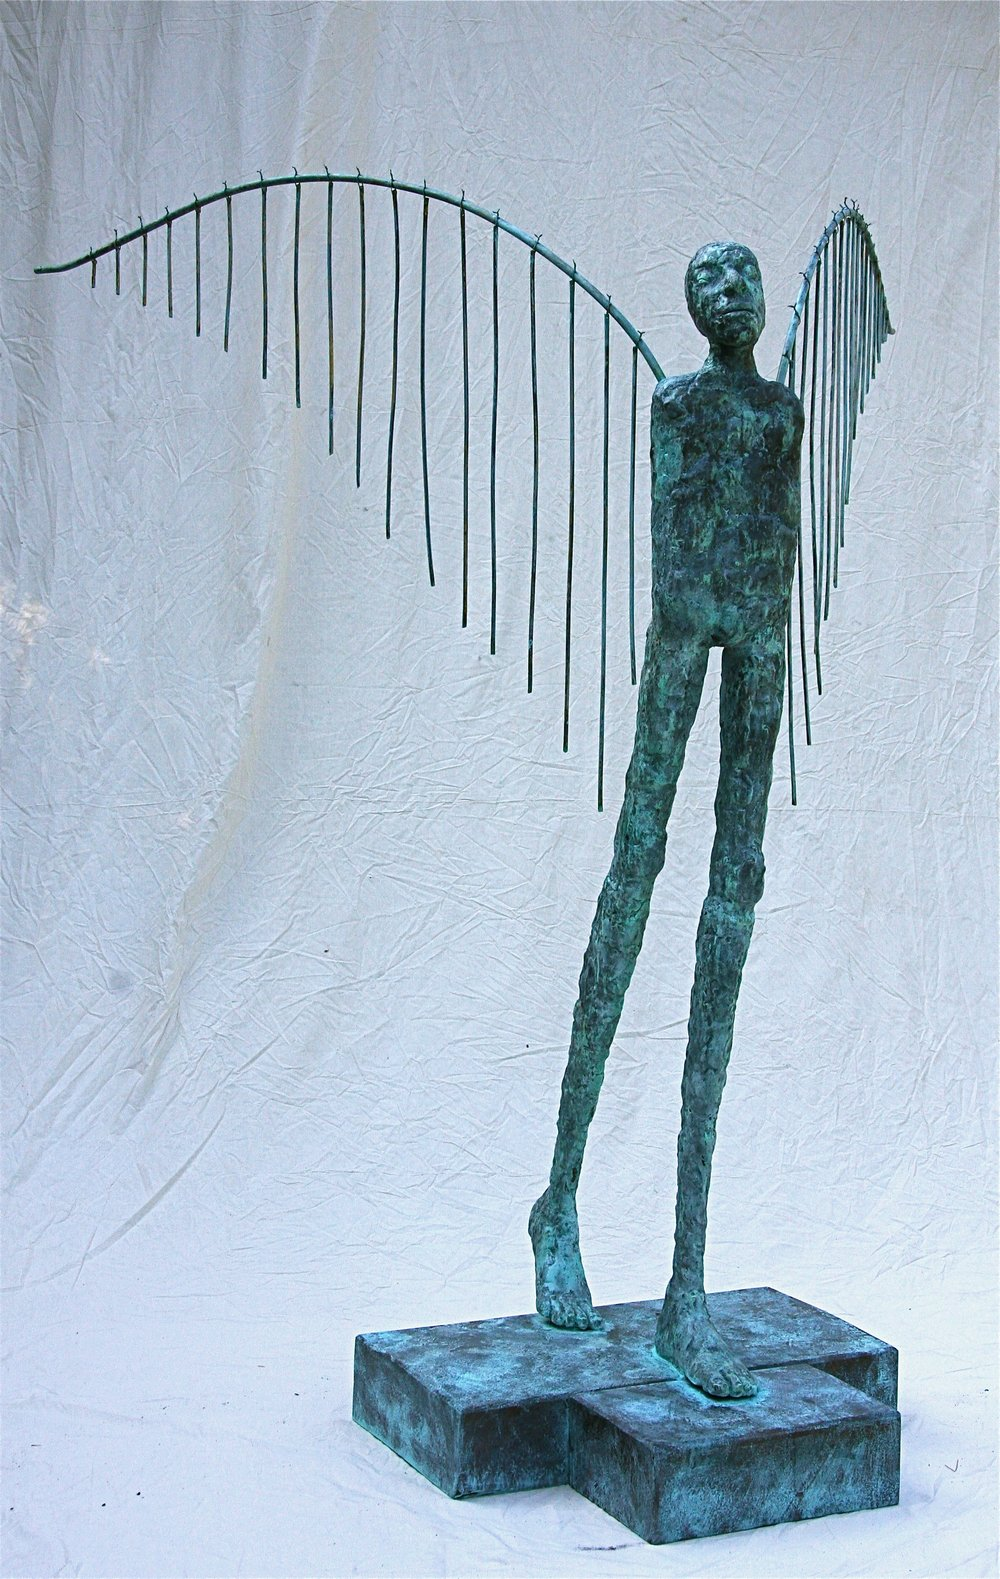 Embracing the rising sun on summer's eve   2009  77 x 82 x 60  Bronze